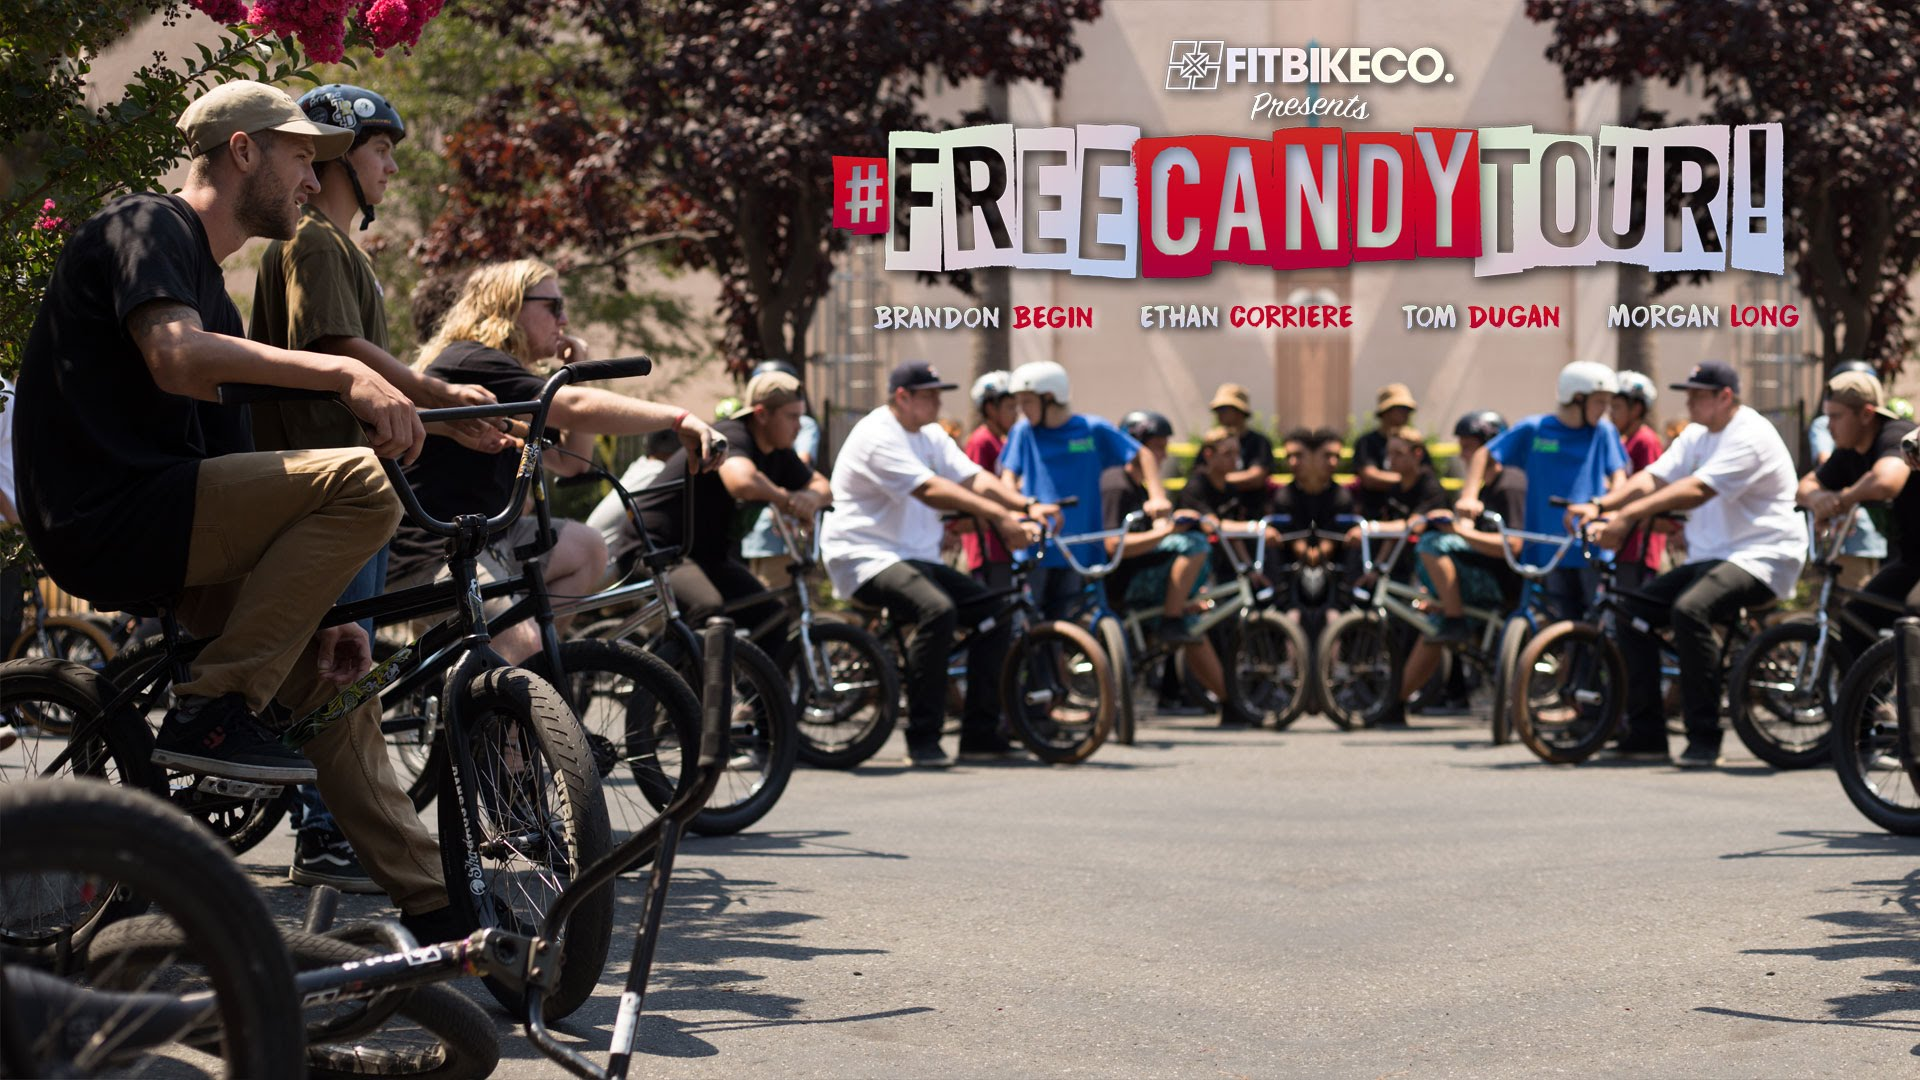 FitBikeCo – Free Candy Tour!